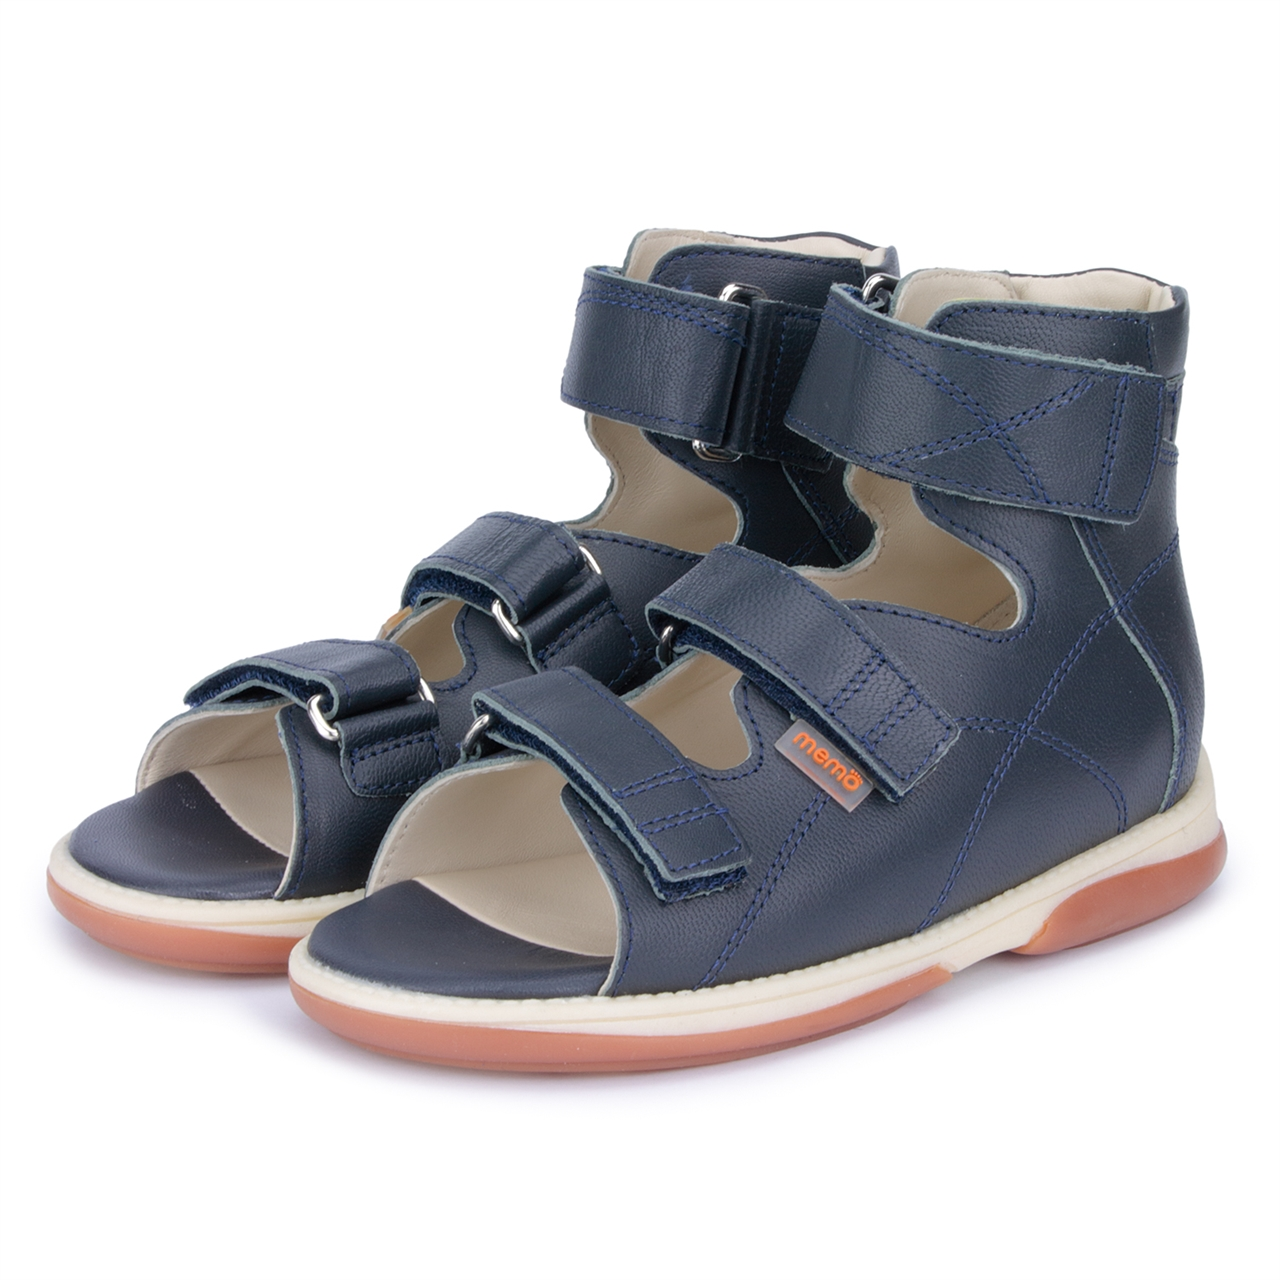 0b8b8ad2c ... Picture of Memo Helios 3DA Navy Blue Boy Youth Orthopedic Velcro Sandal  ...